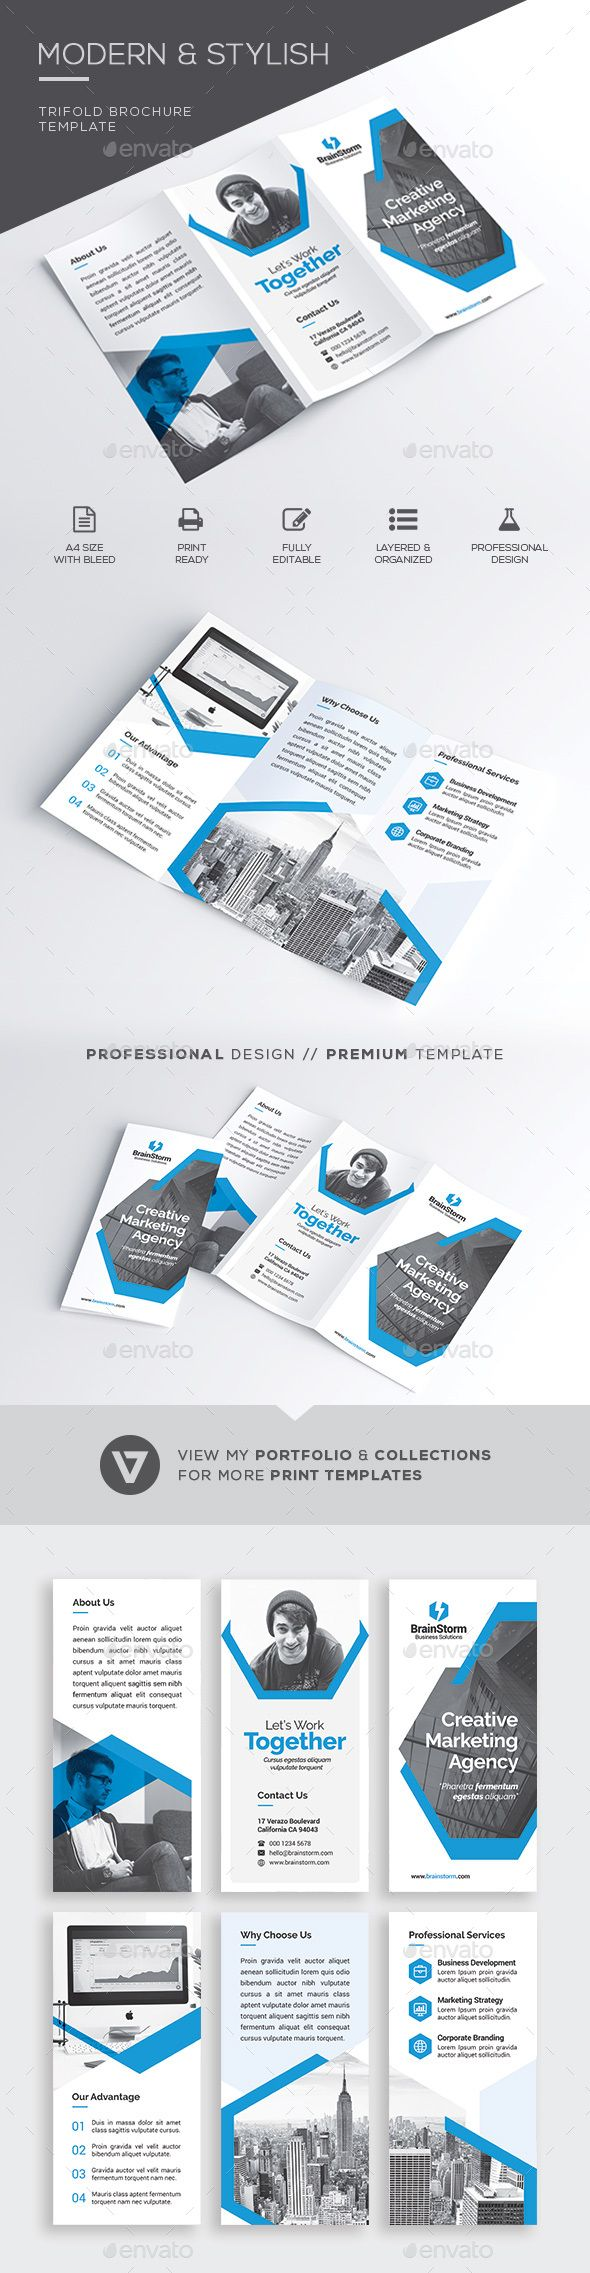 Trifold Brochure A highly versatile corporate trifold brochure suitable for all business industry. Simply insert the images reflecting your business nature and you're all set. Create stunning brochures on the fly and streamline your workflow now with this easy to edit template